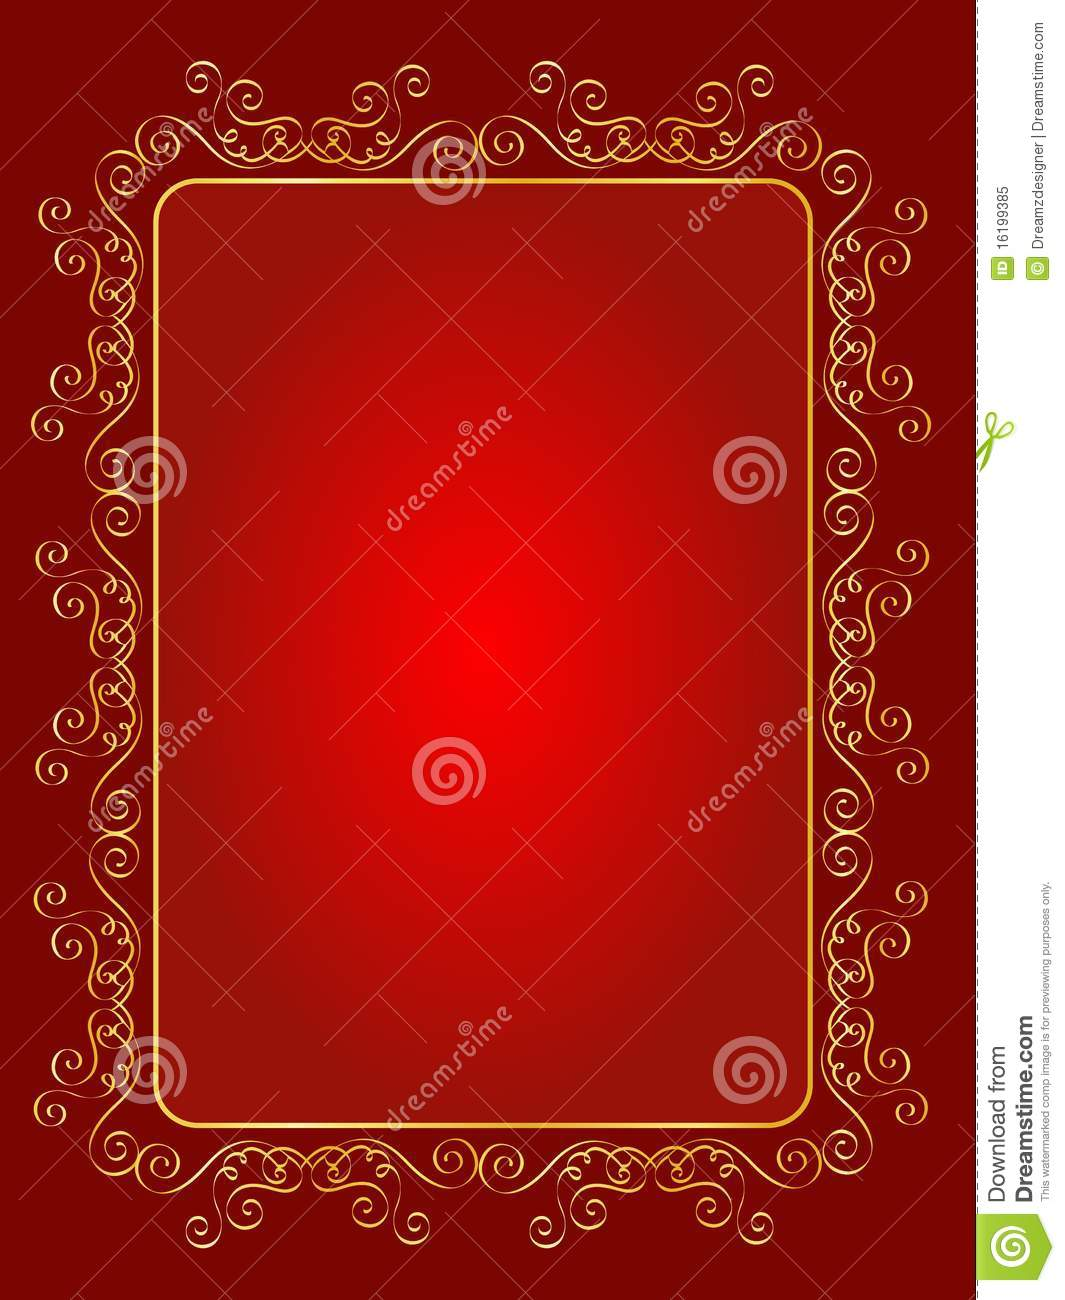 Wedding Invitation Background Stock Vector - Illustration of colour ...